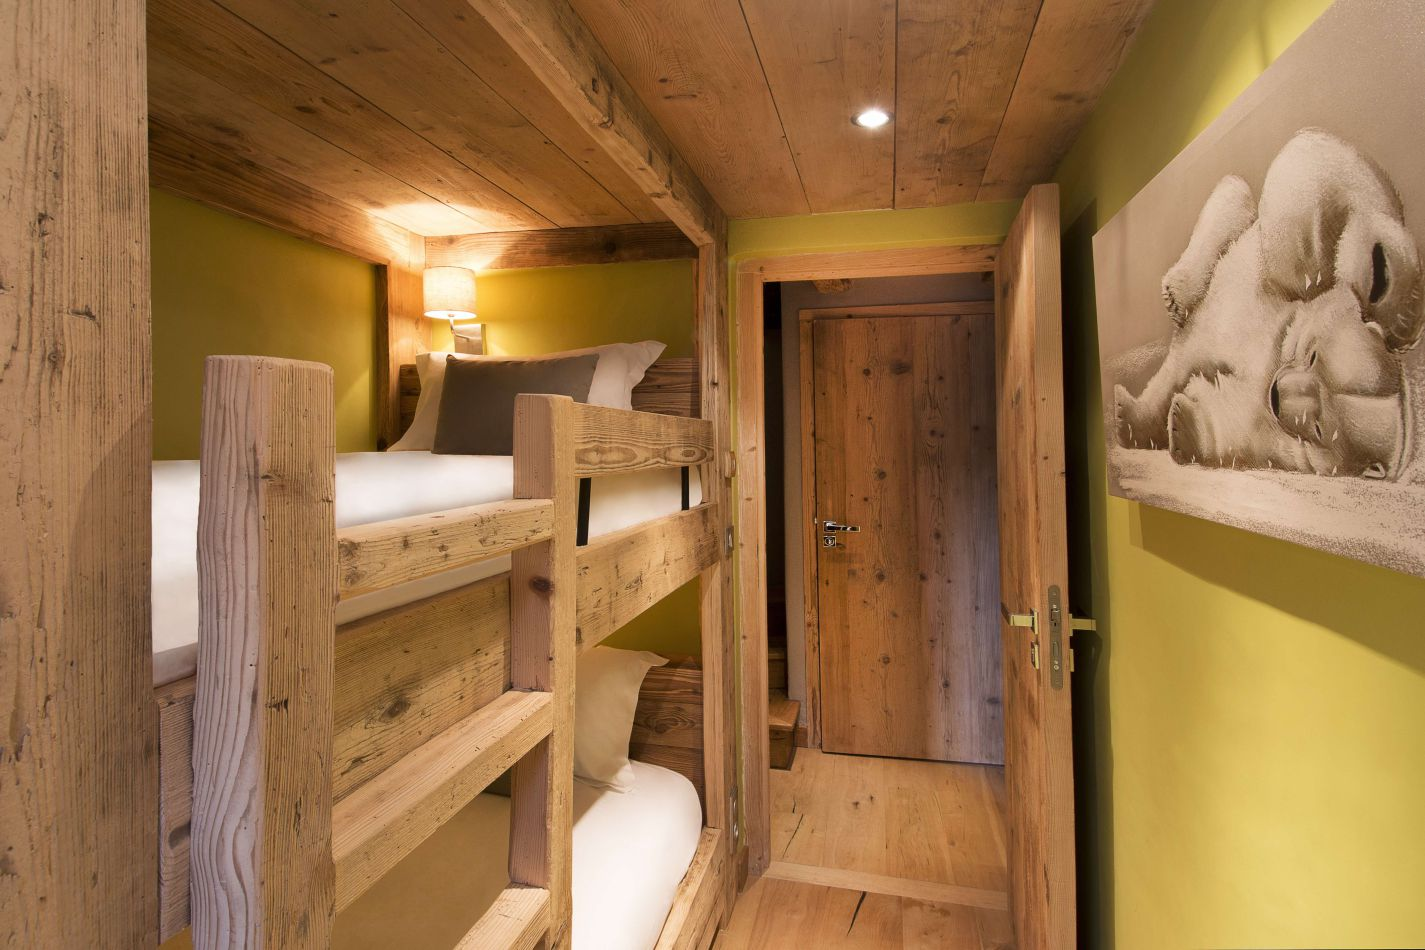 al-rive-gauche-adult-bunk-room